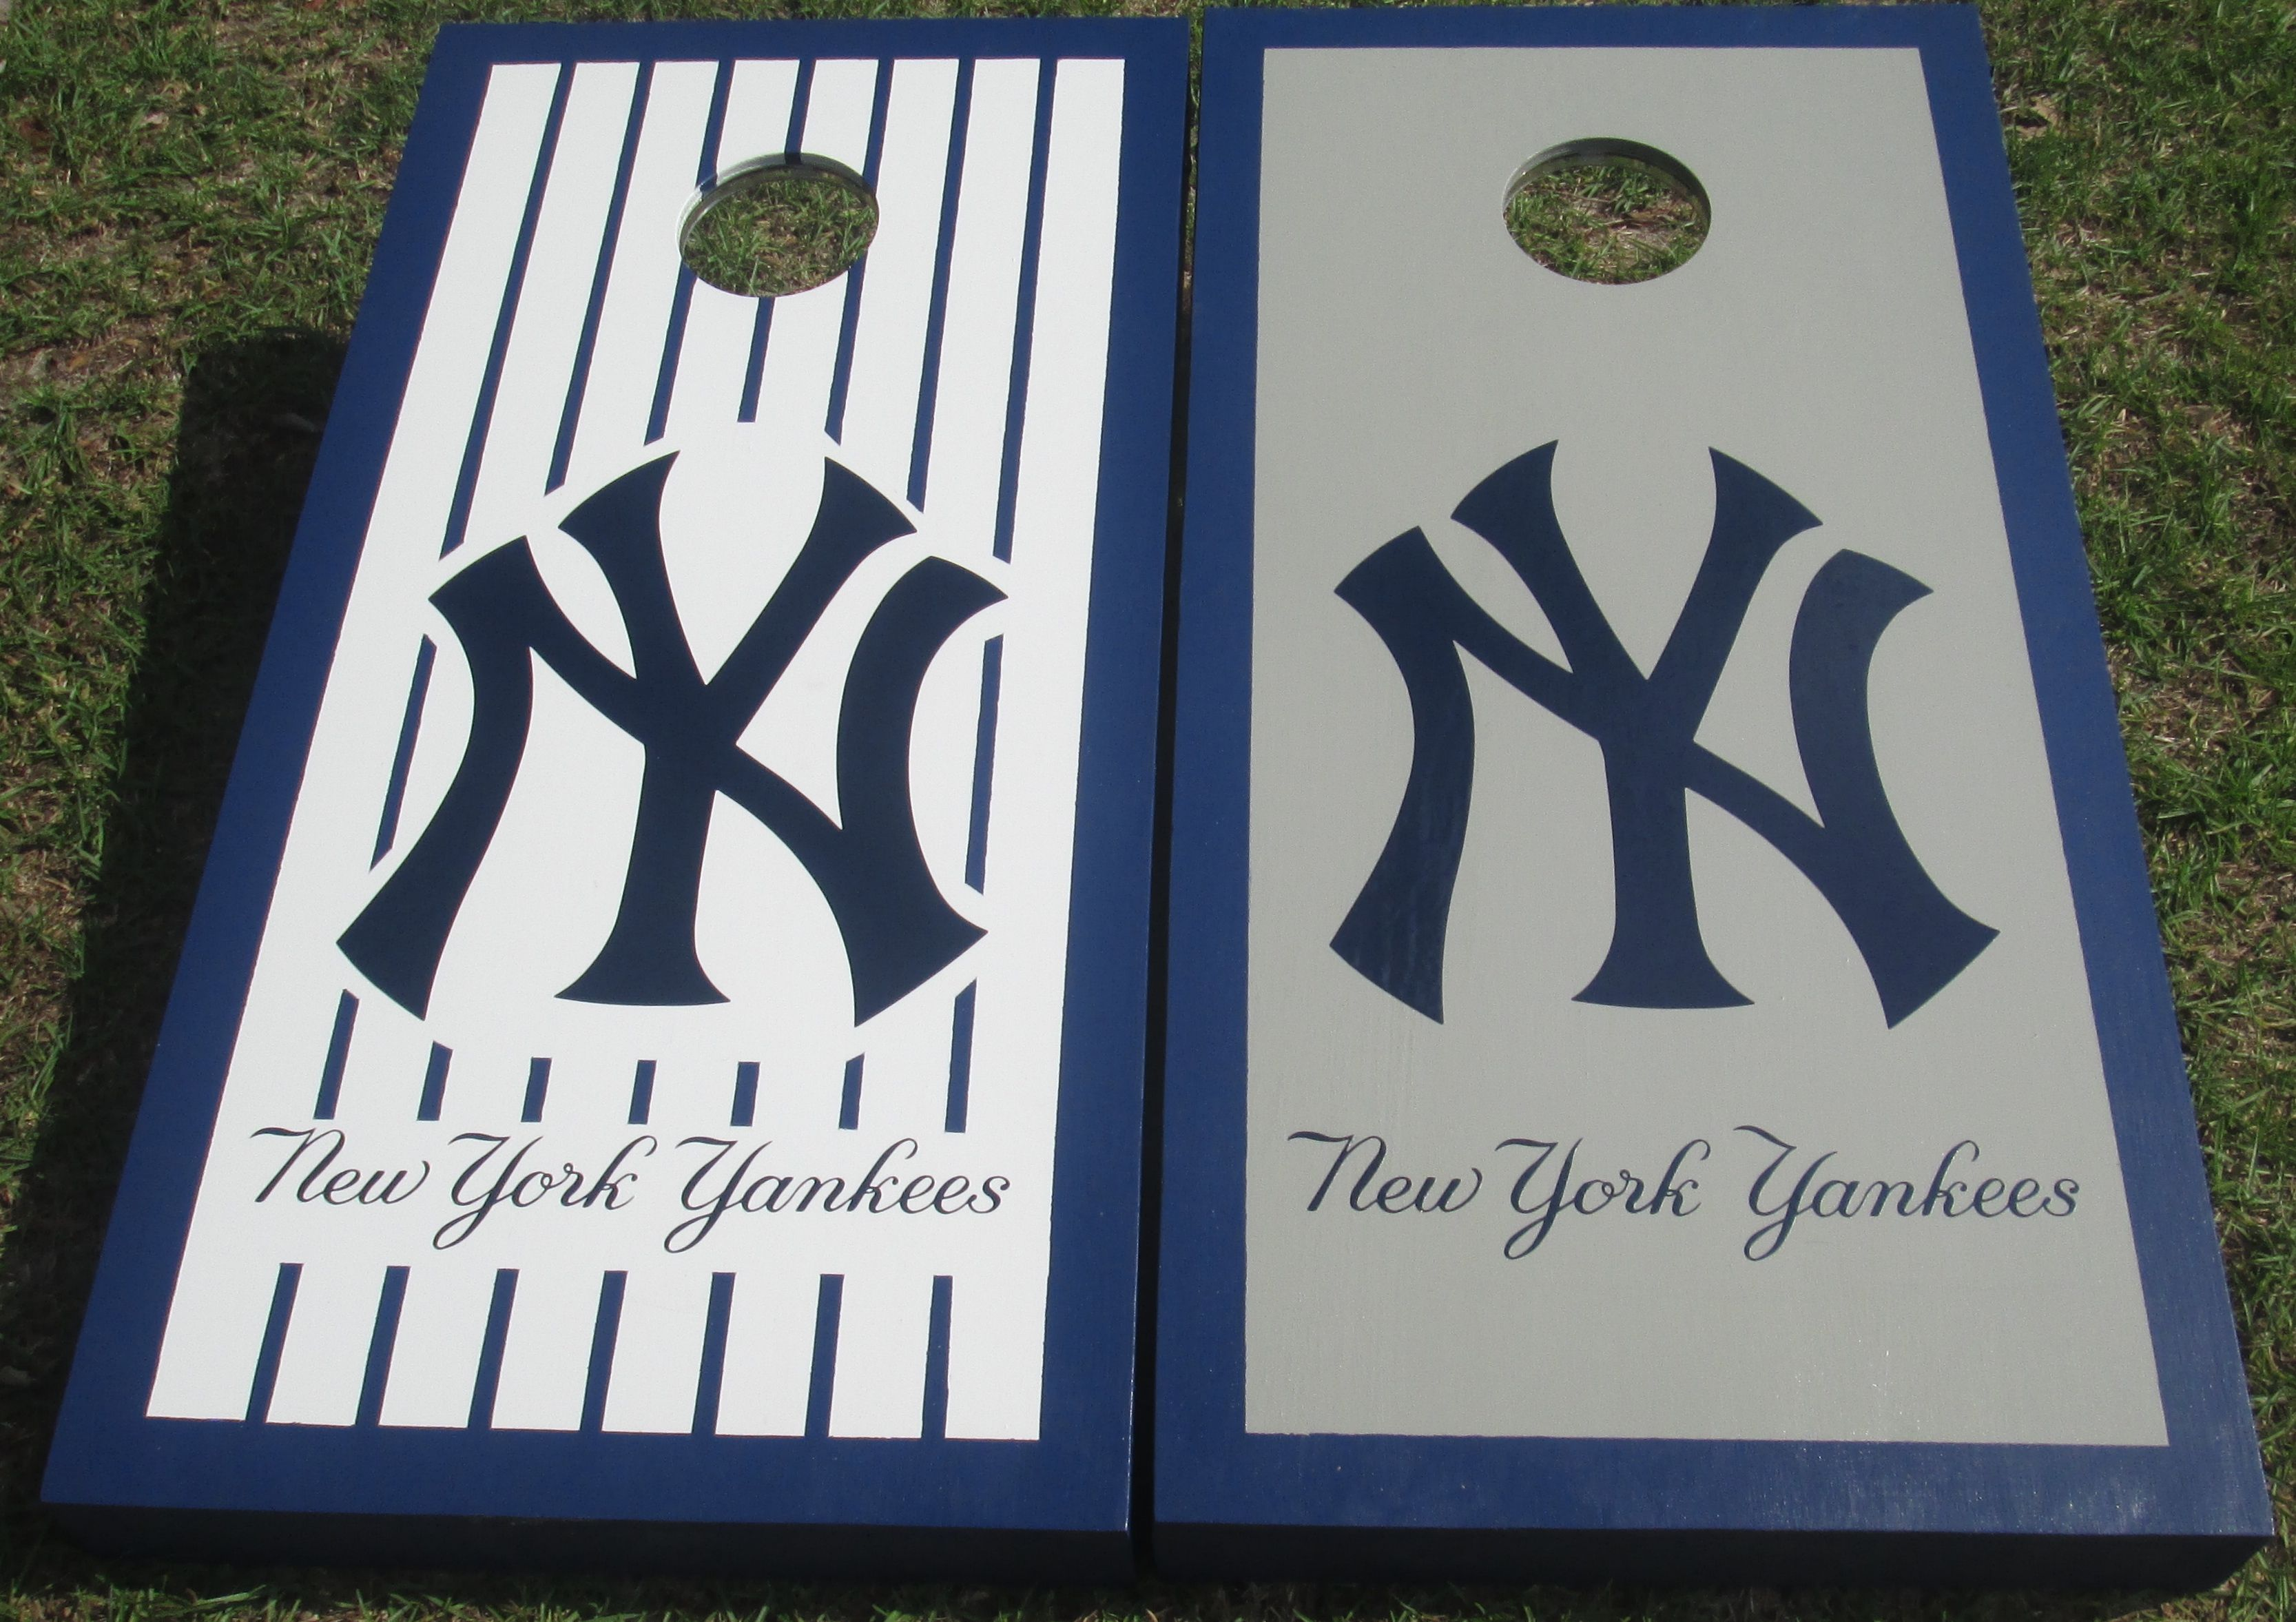 Home Away New York Yankee Jersey Inspired Boards By Request Cornhole Boards Designs Cornhole Designs Photo Craft